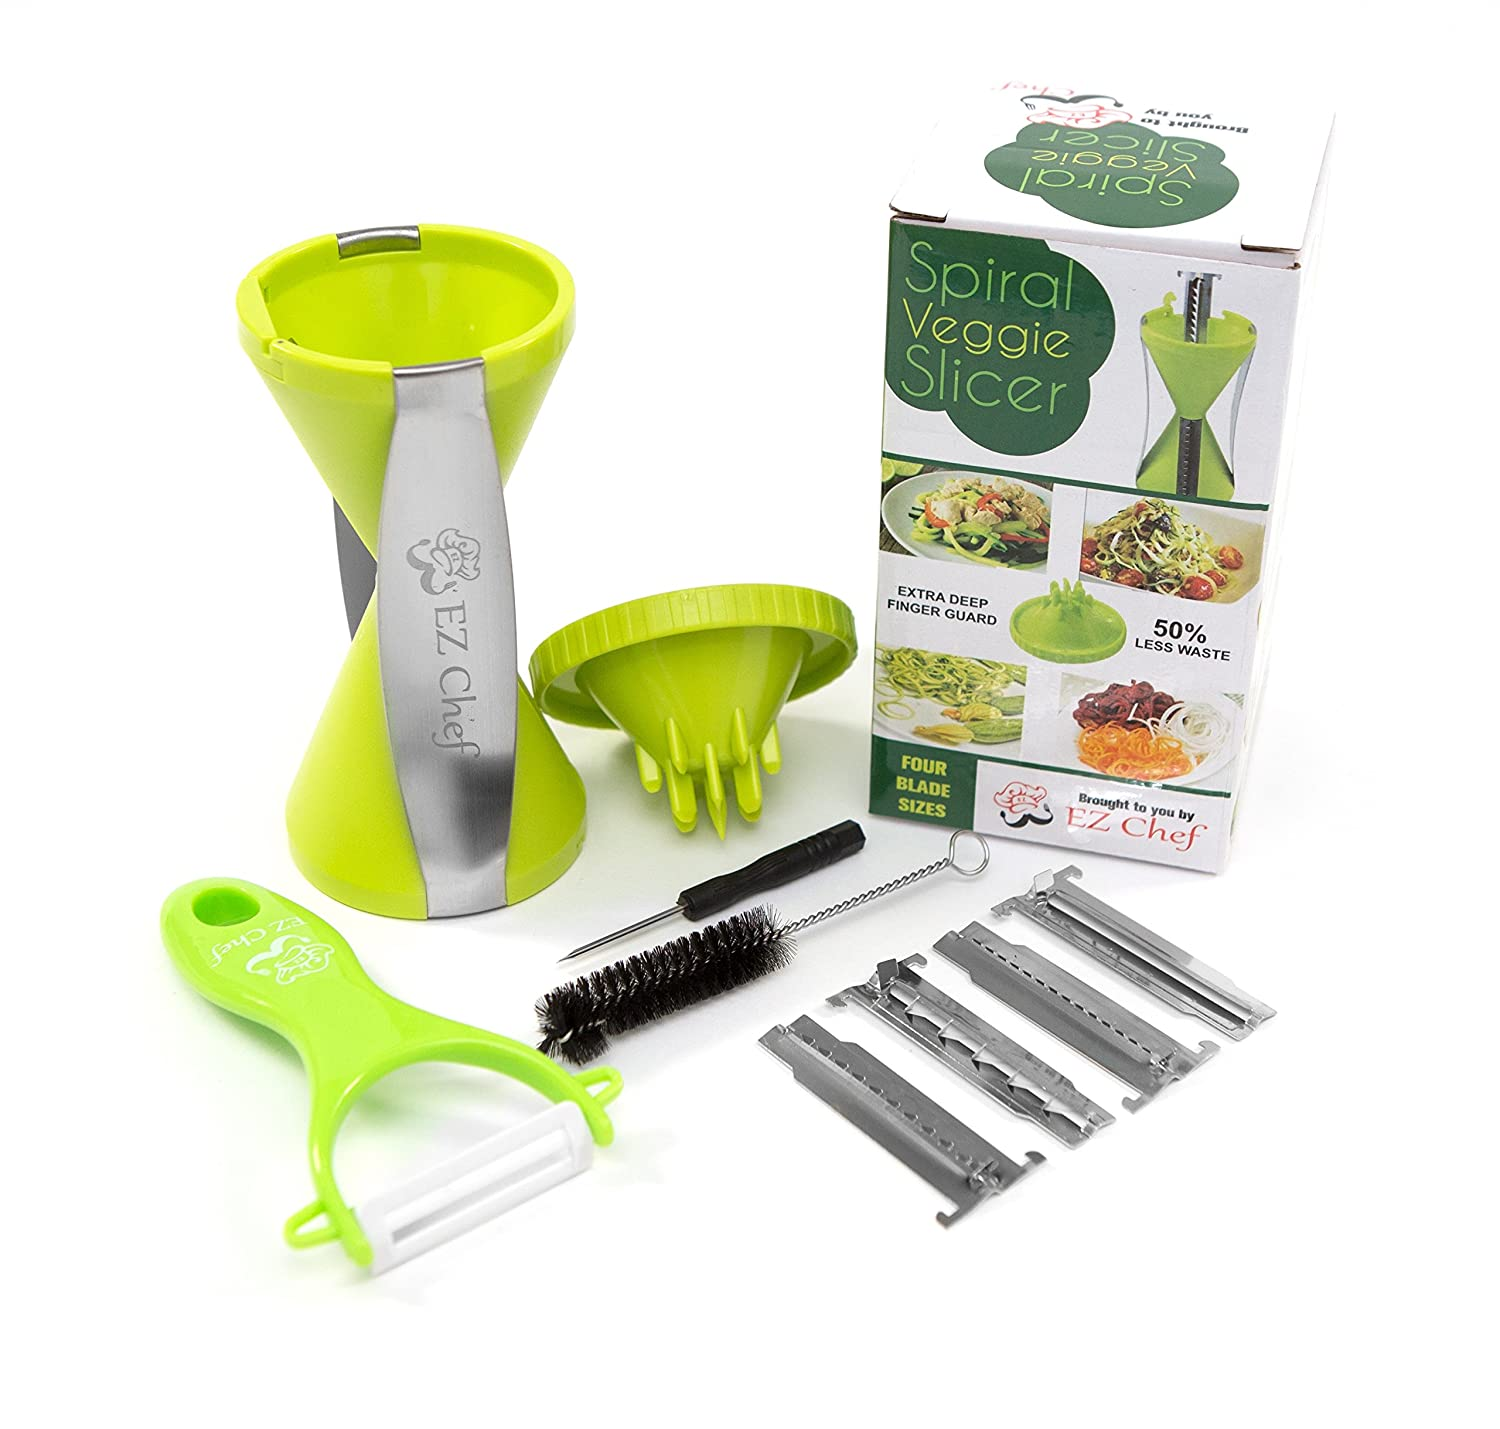 EZ Chef Comfort Handle, BPA Free, 4-Blade Vegetable Spiralizer Bundle